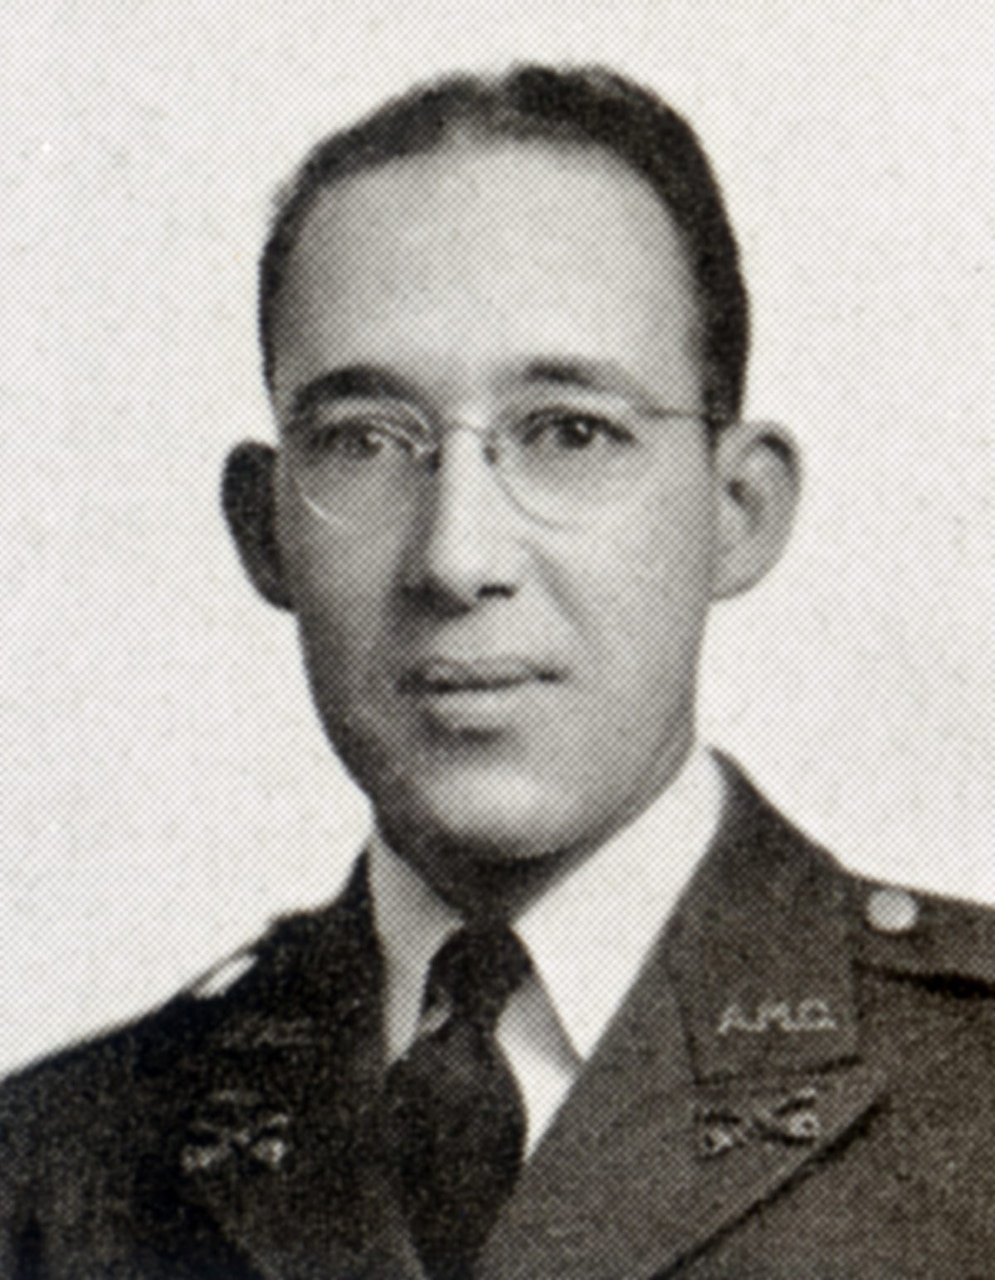 A man in glasses and a uniform looks at the camera.